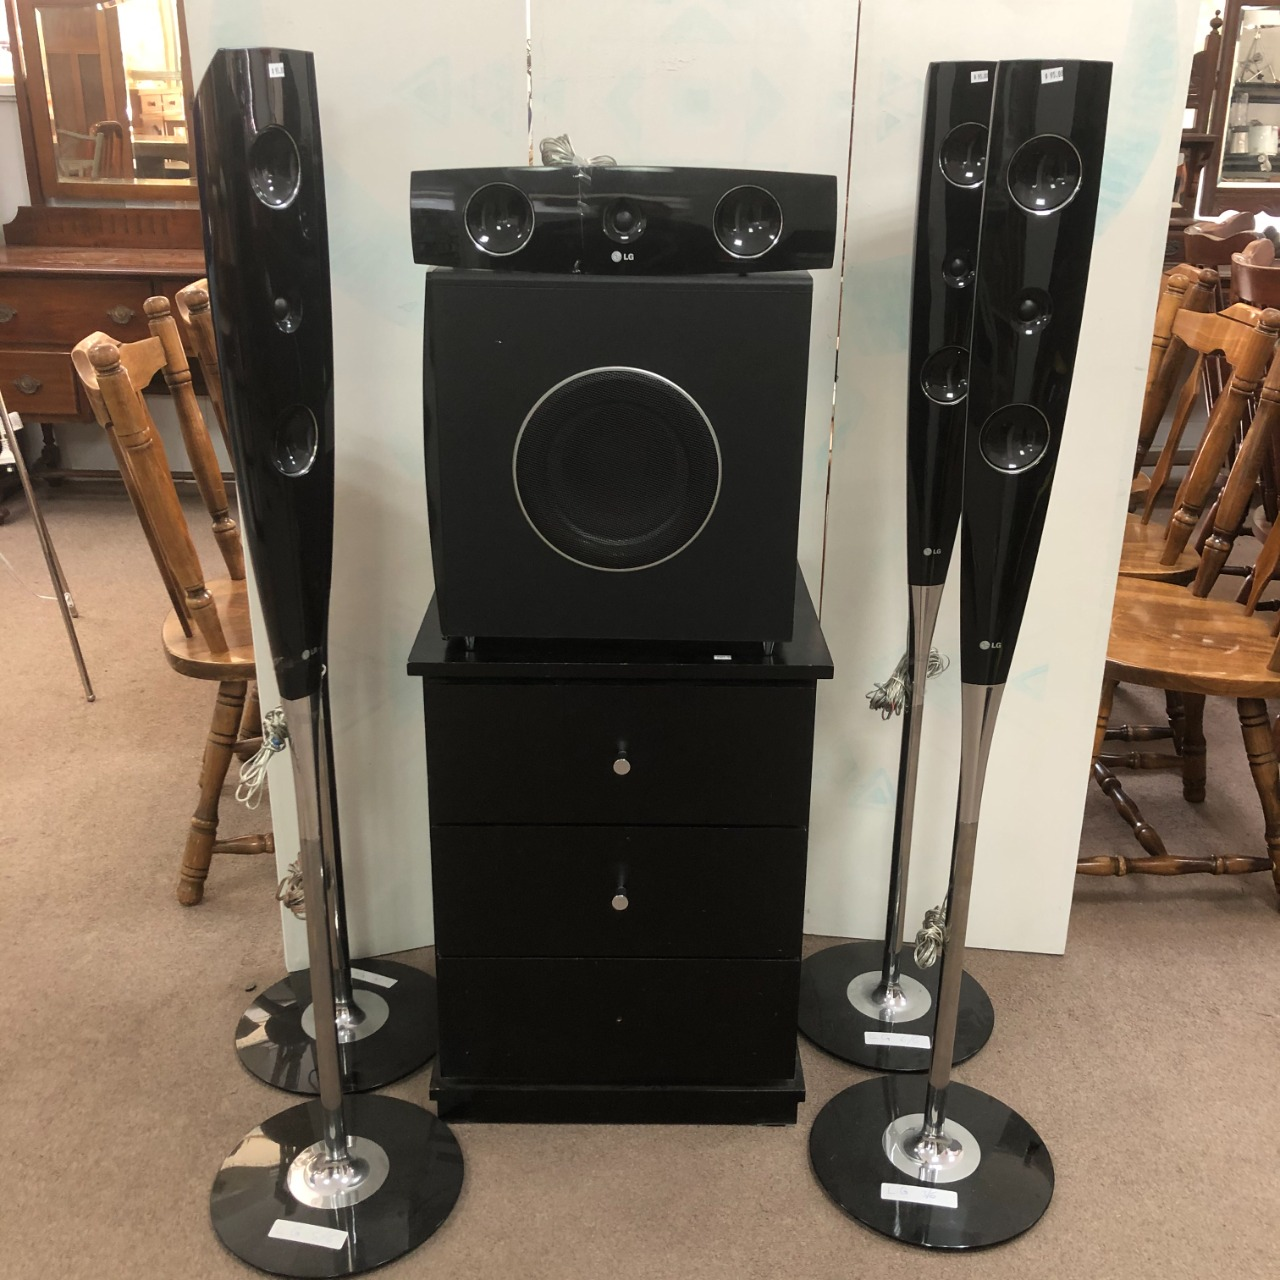 LG Sub woofer and 5 Speakers